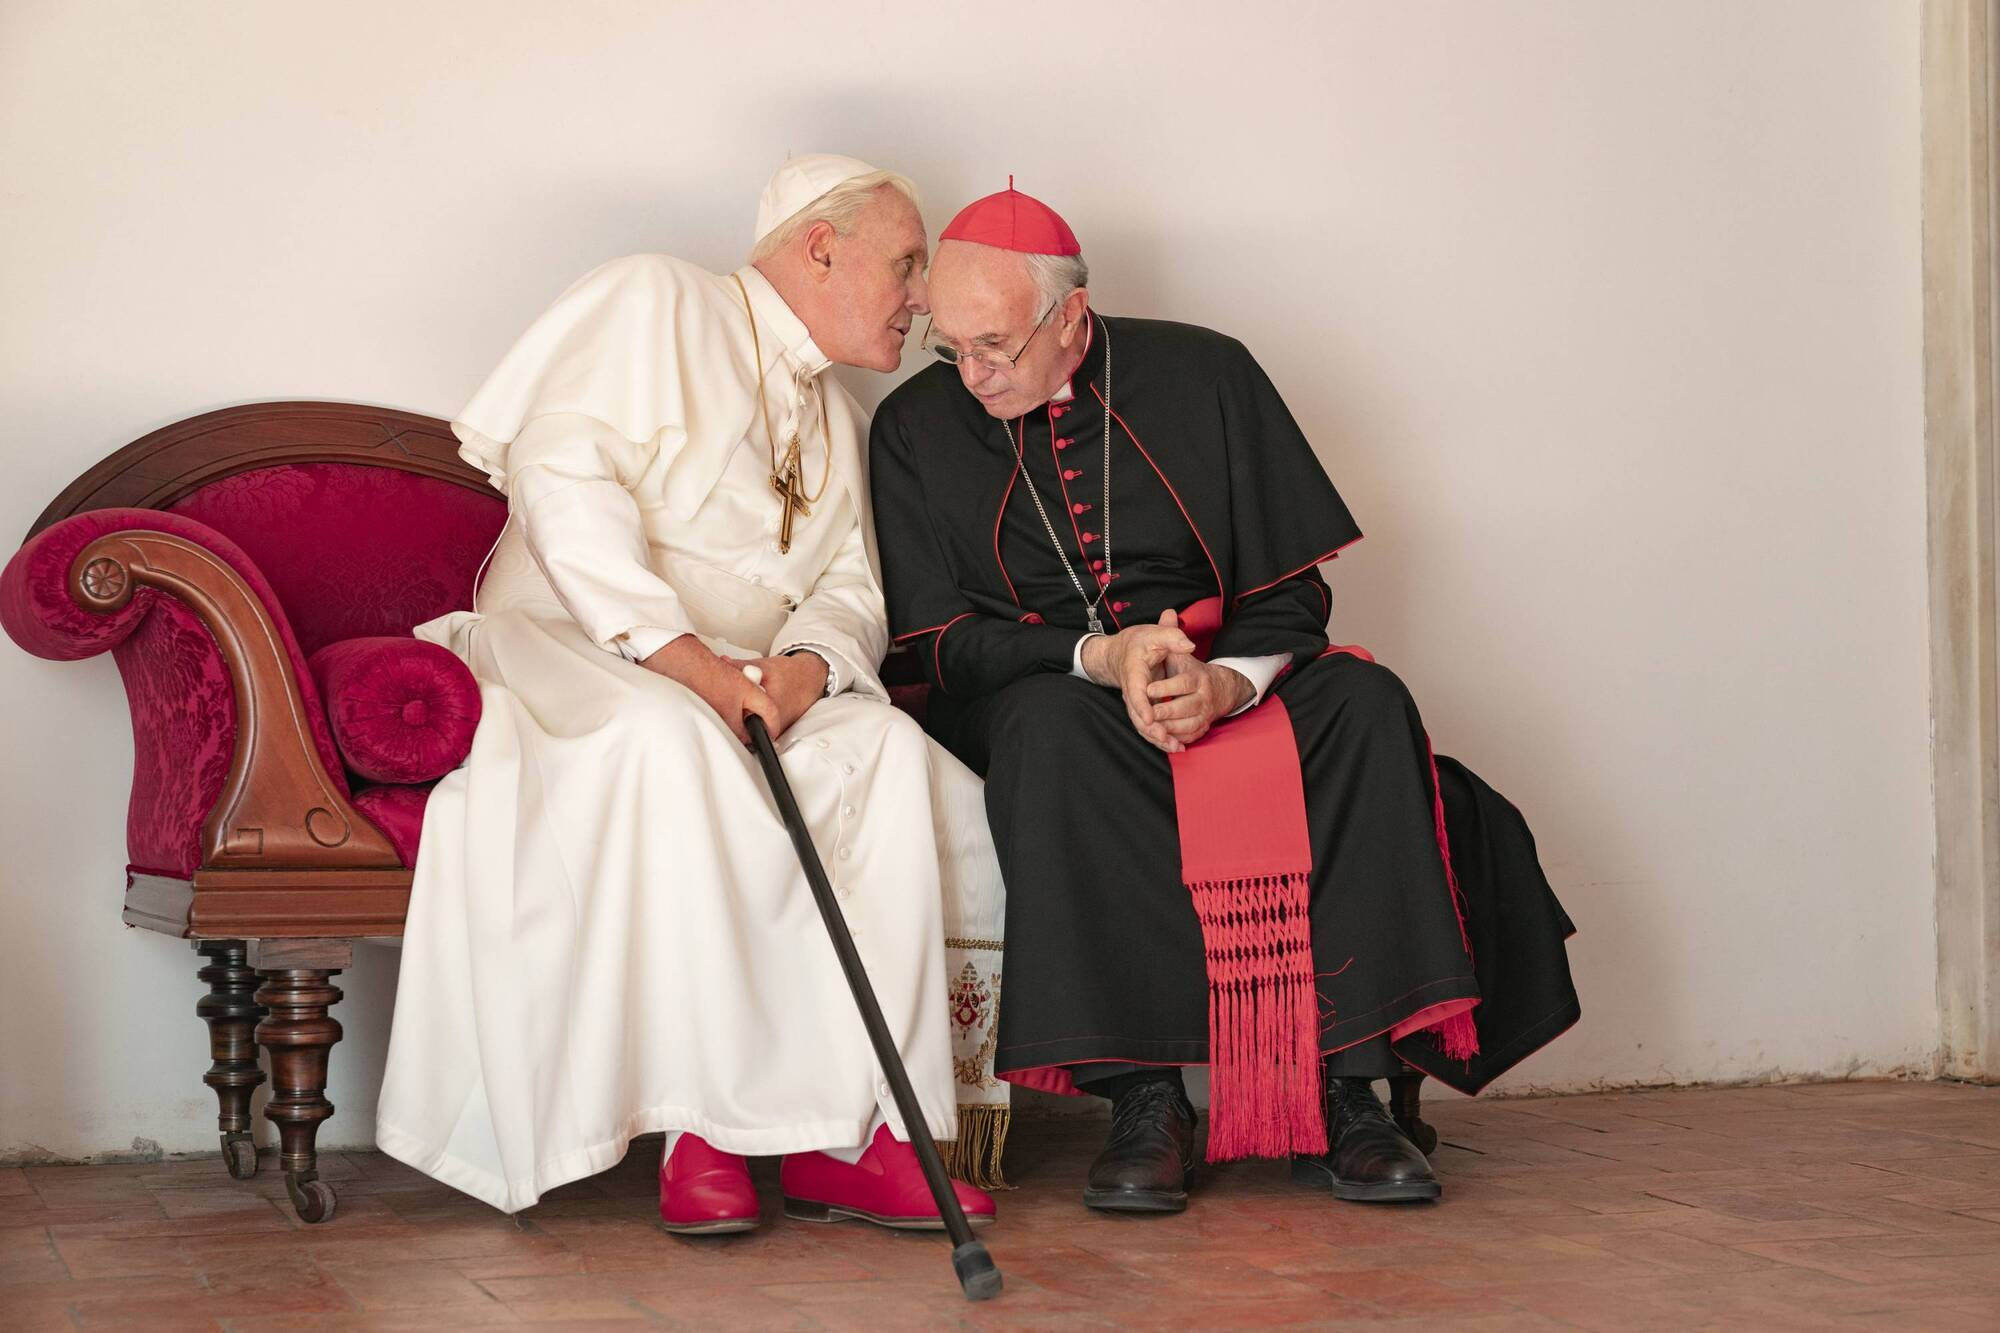 Alison O'Connor: Government has too many cooks, just like 'The Two Popes'